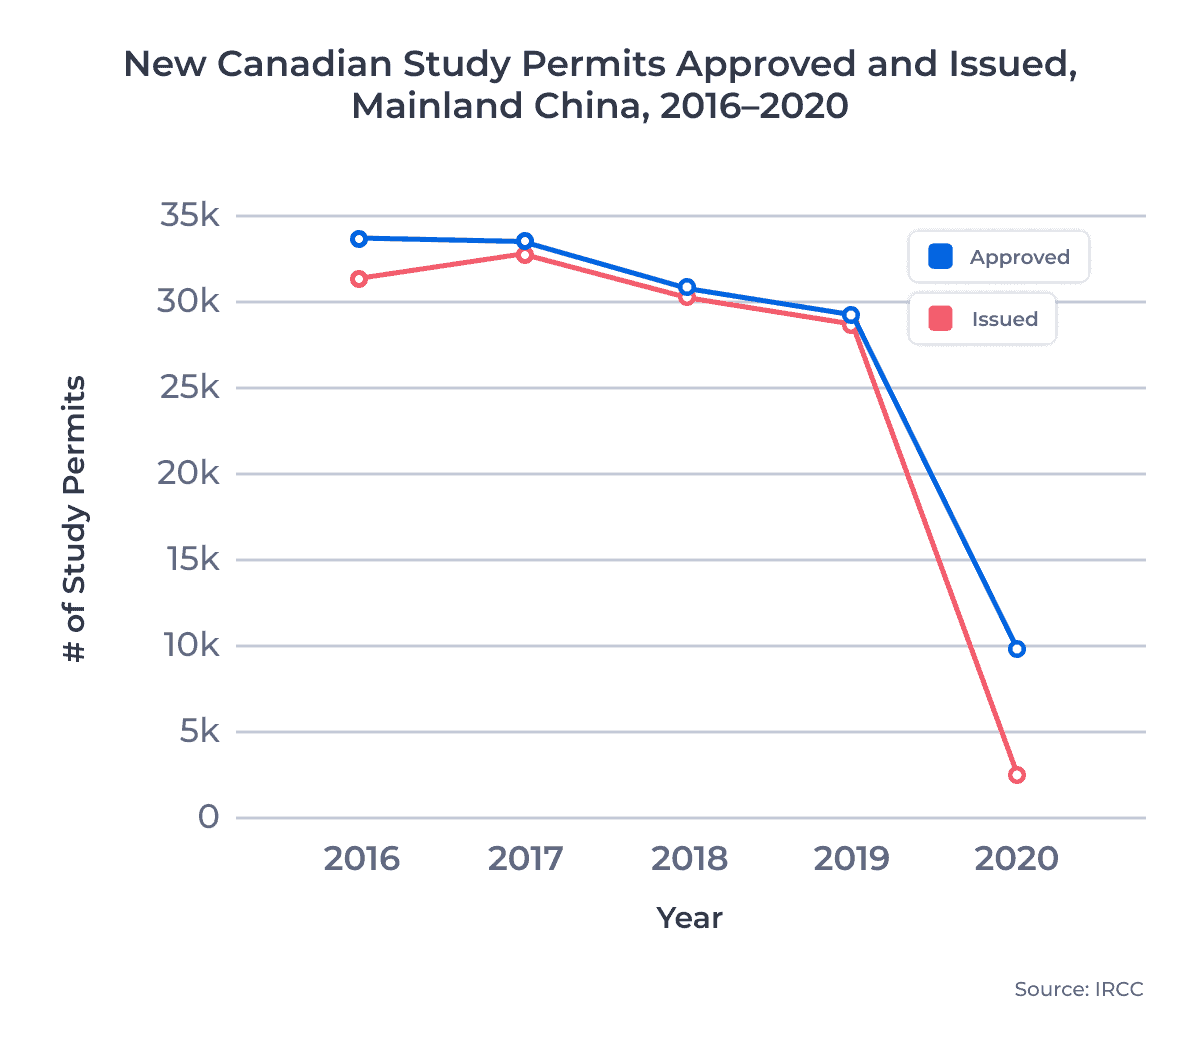 Line chart showing the number of new Canadian study permits approved for and issued to students from Mainland China between 2016 and 2020. Examined in detail below.